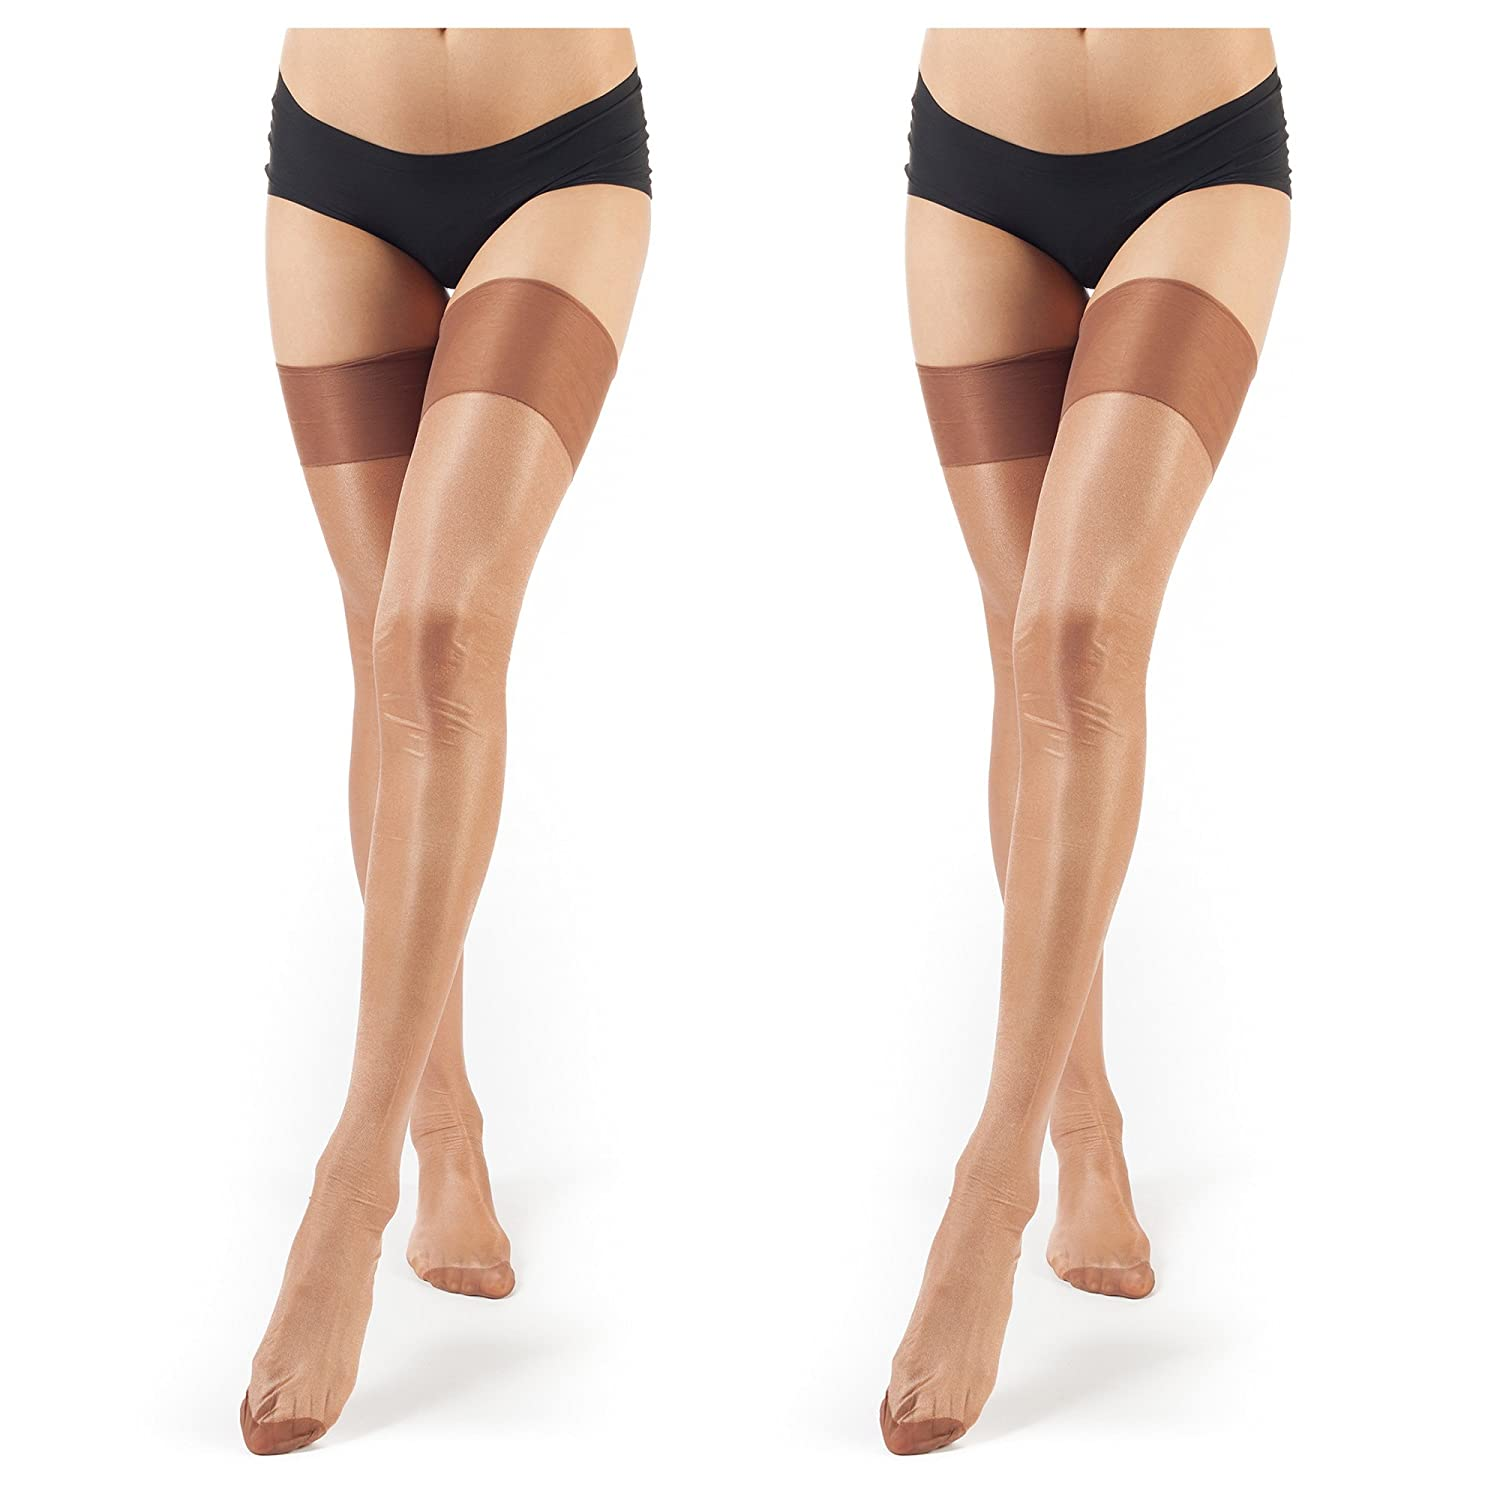 2 Pairsbrown ElsaYX Women's Classic Pure Nylon Glossy Thigh High Stockings for use with Garter Belt Lingerie